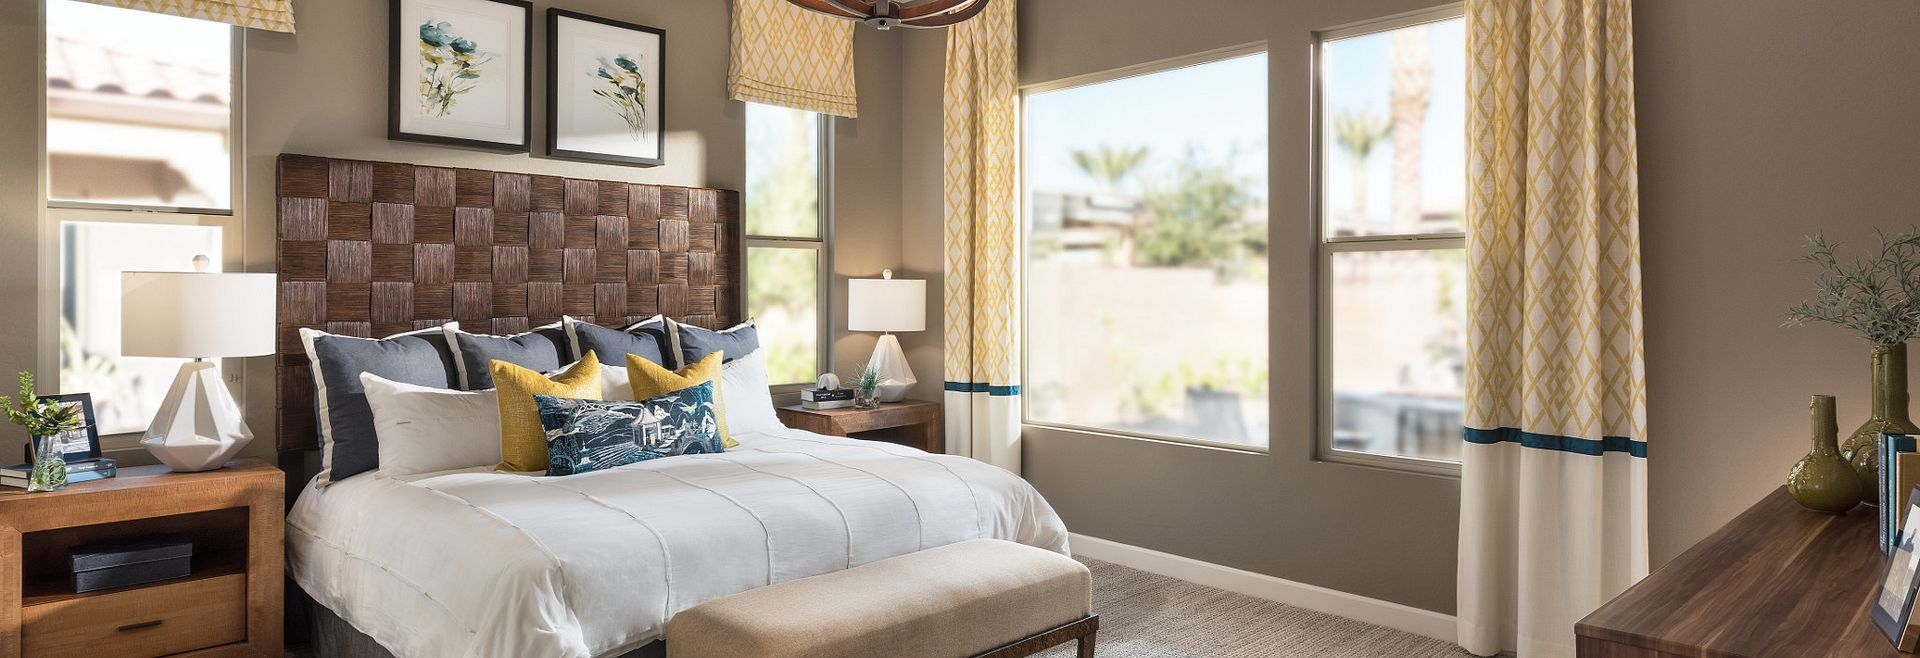 Bedroom featured in the Concentric By Shea Homes - Trilogy in Phoenix-Mesa, AZ